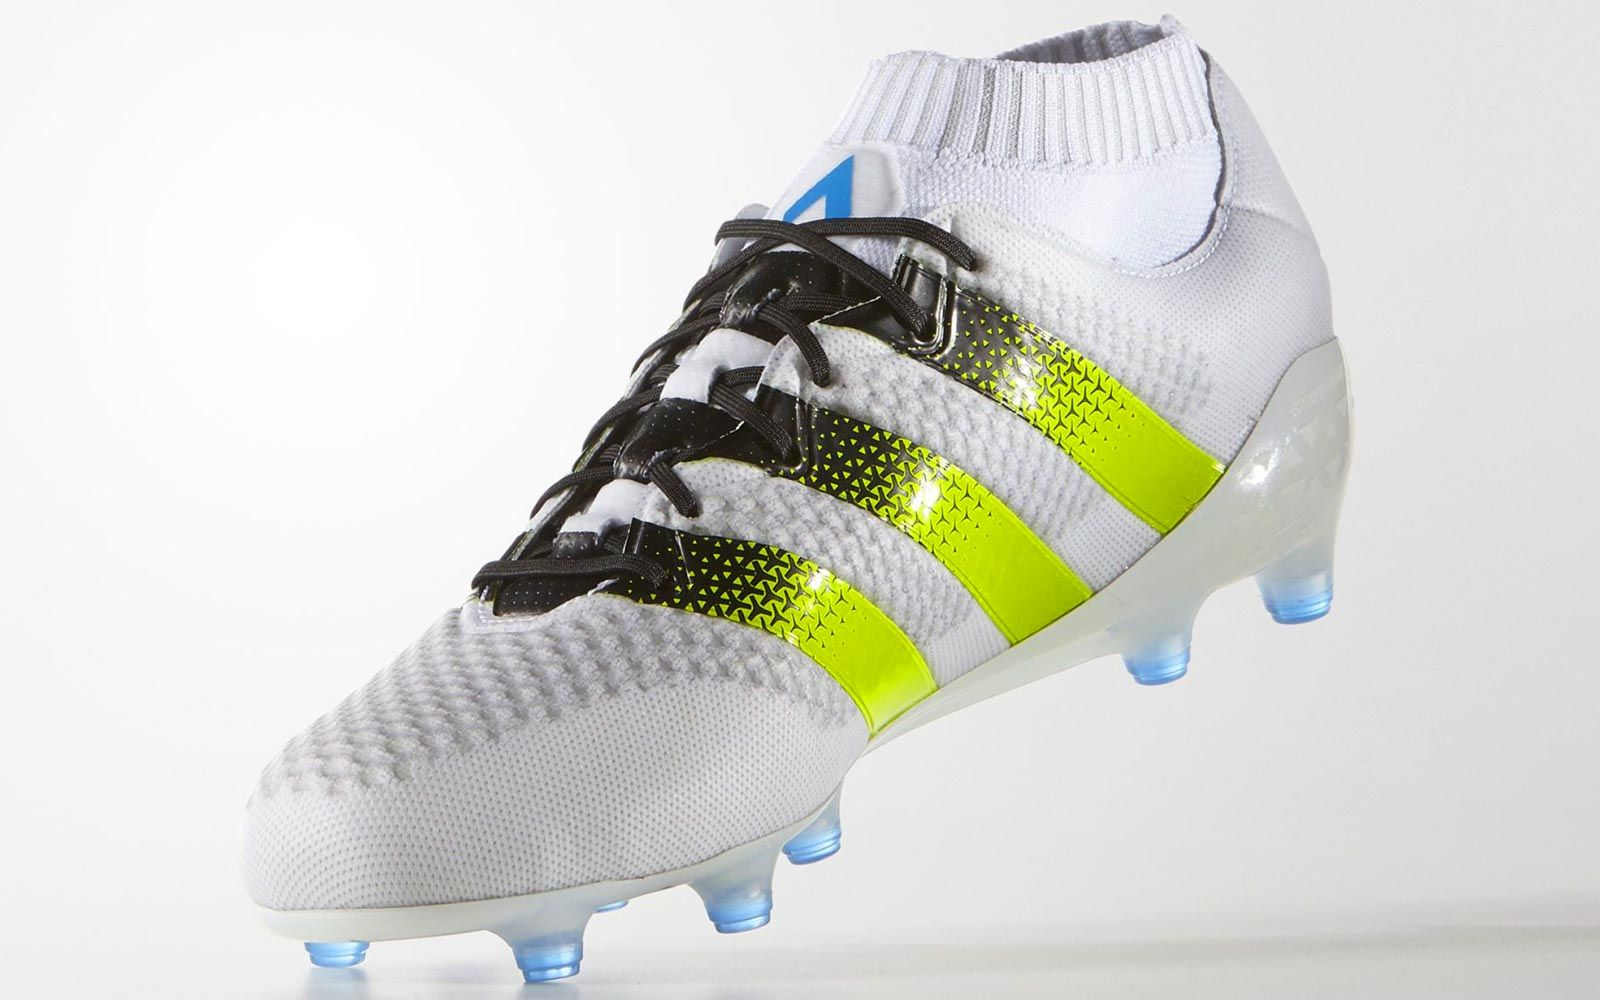 reputable site 086c1 da835 The first-ever white Men s edition of the next-gen Adidas Ace Football Boots  boasts a fresh design.